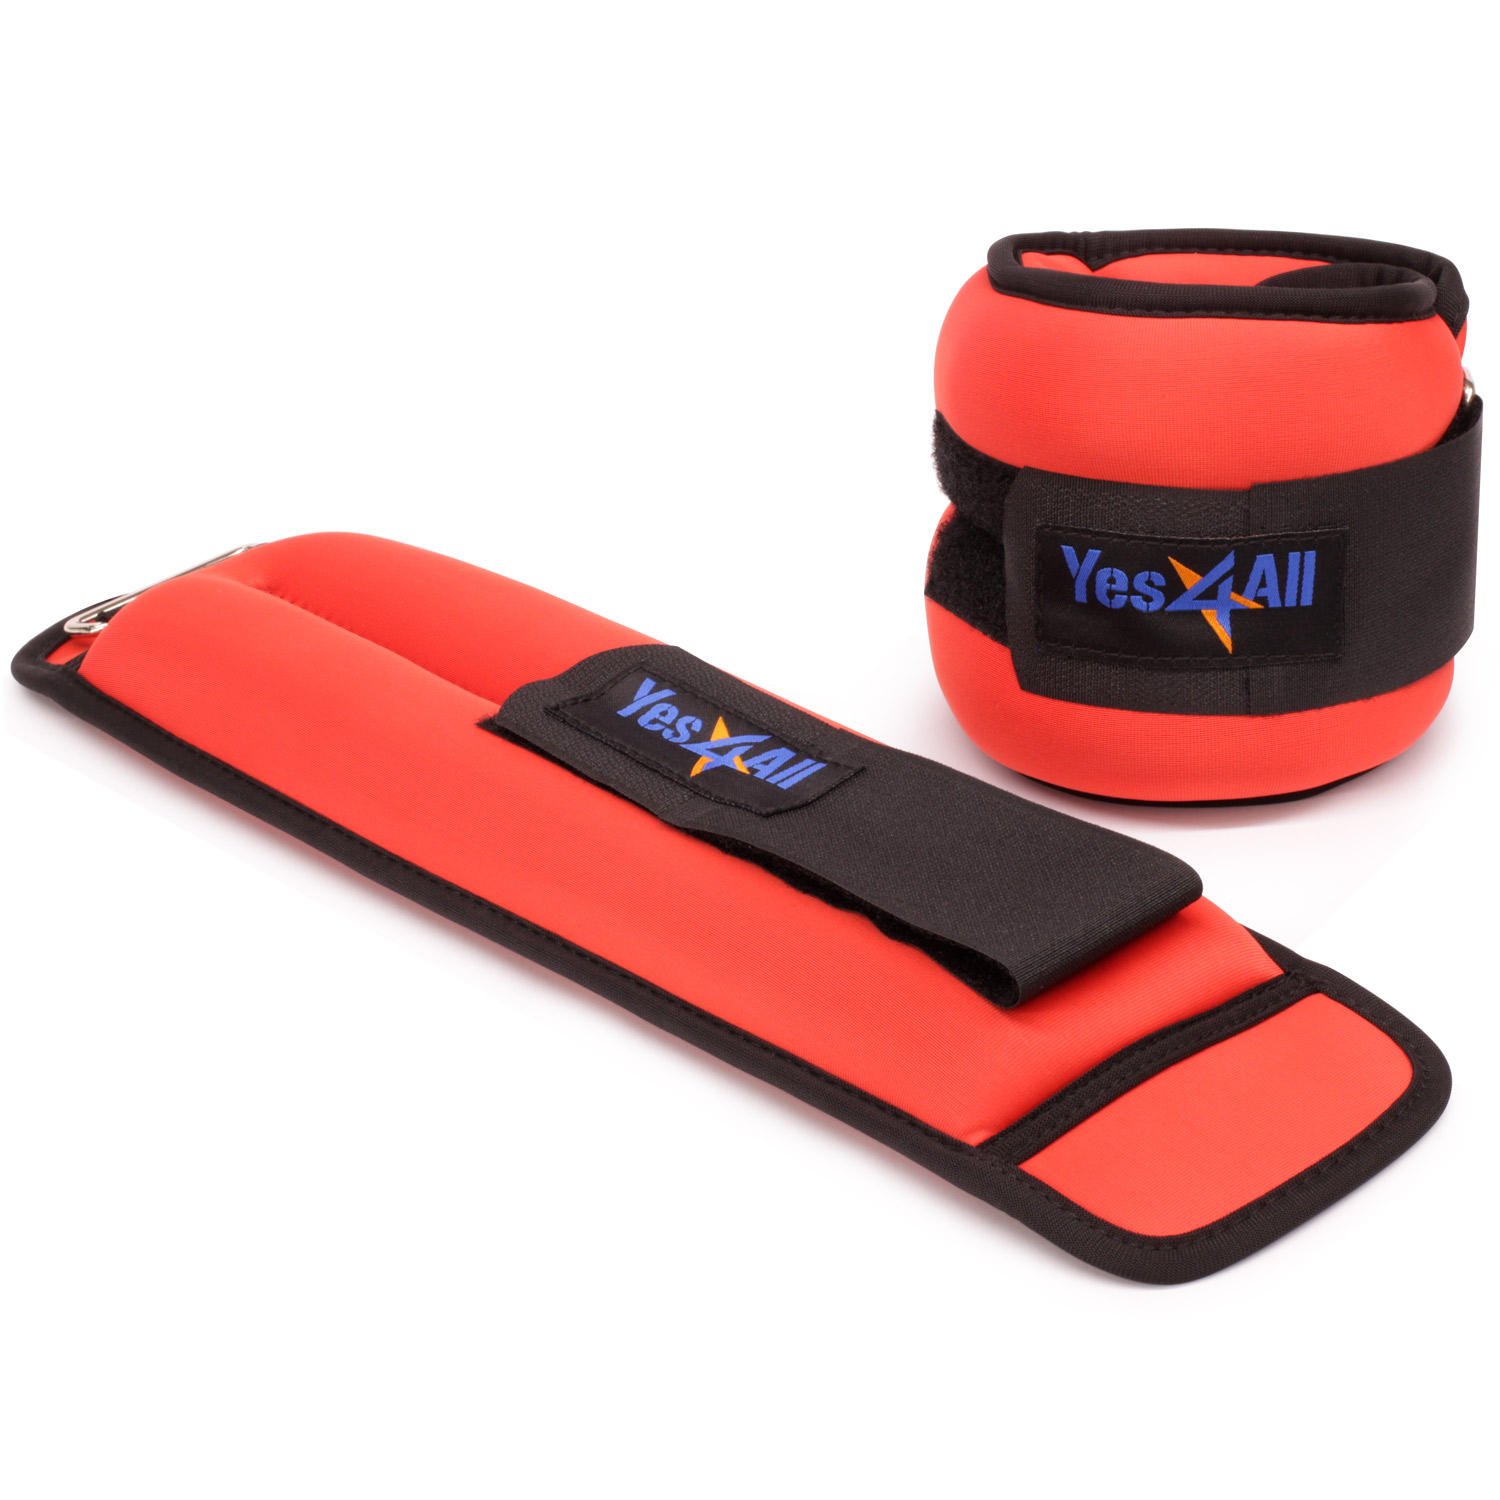 Yes4All Ankle / Wrist Weight Neoprene (Set of 2) - Comfort Fit with Adjustable Strap - Perfect for Walking, Fitness, Cardio Exercise